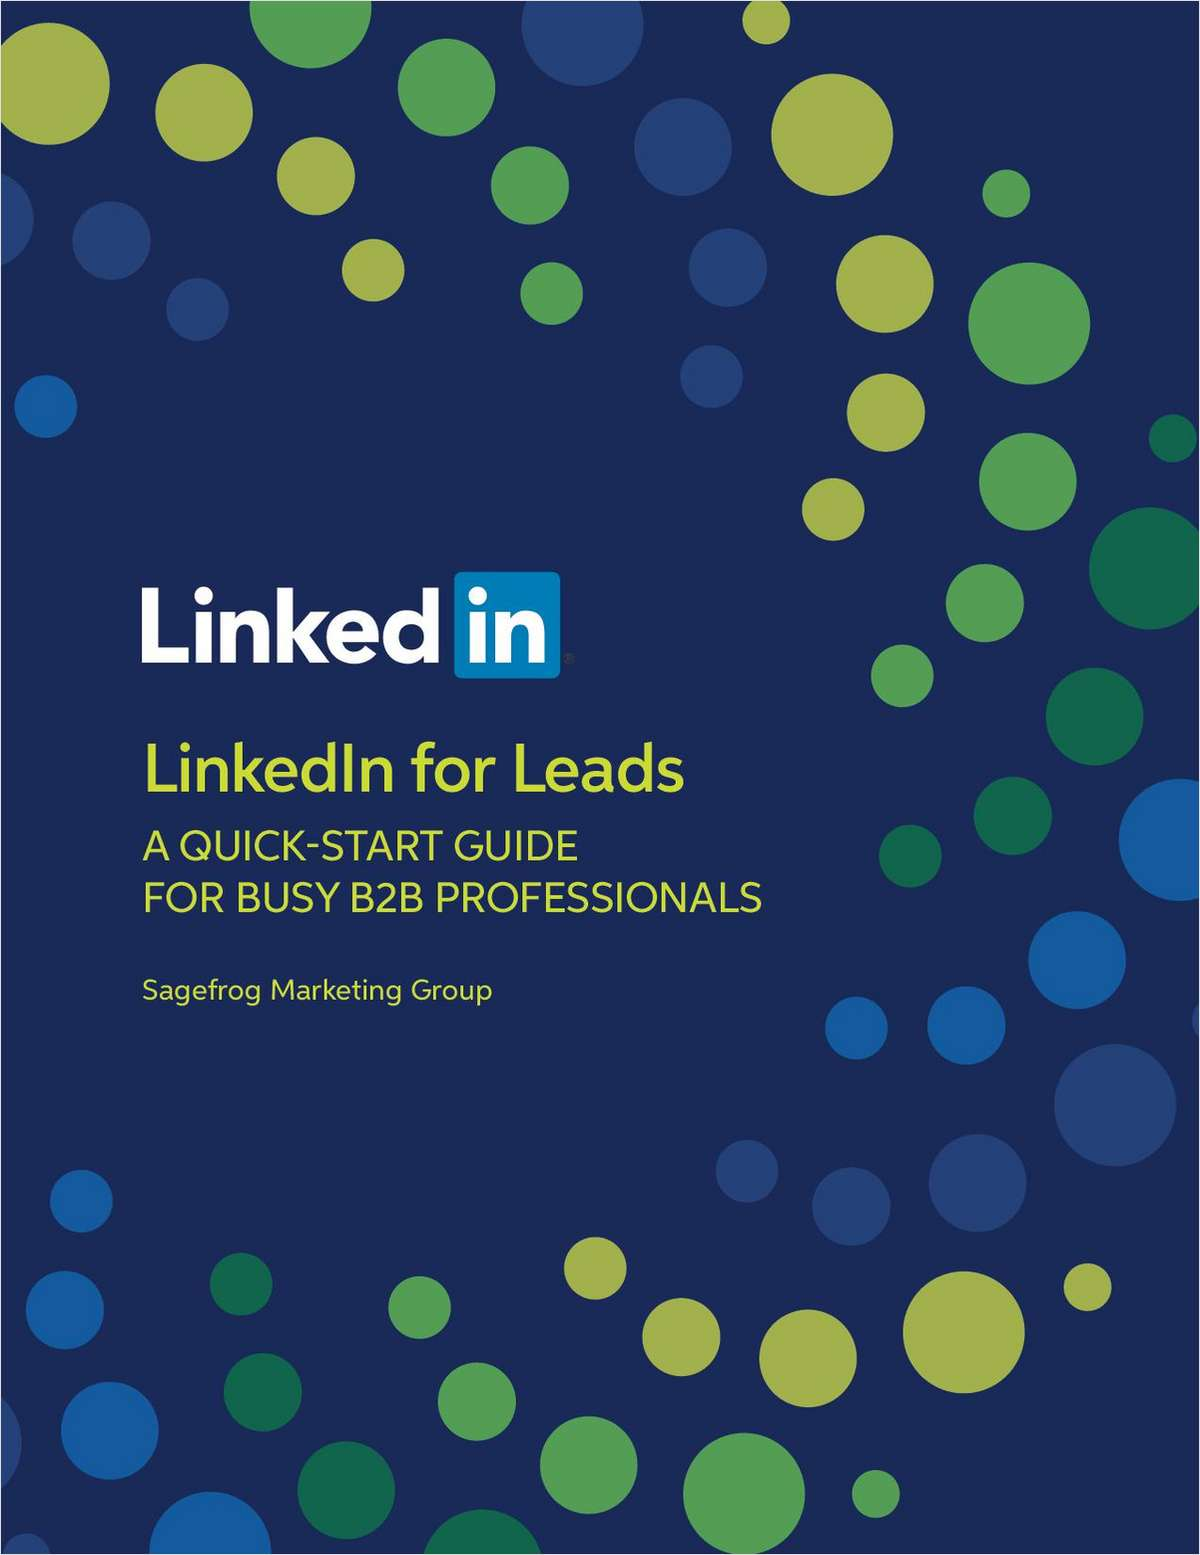 LinkedIn for Leads: A Quick-Start Guide for Busy B2B Professionals